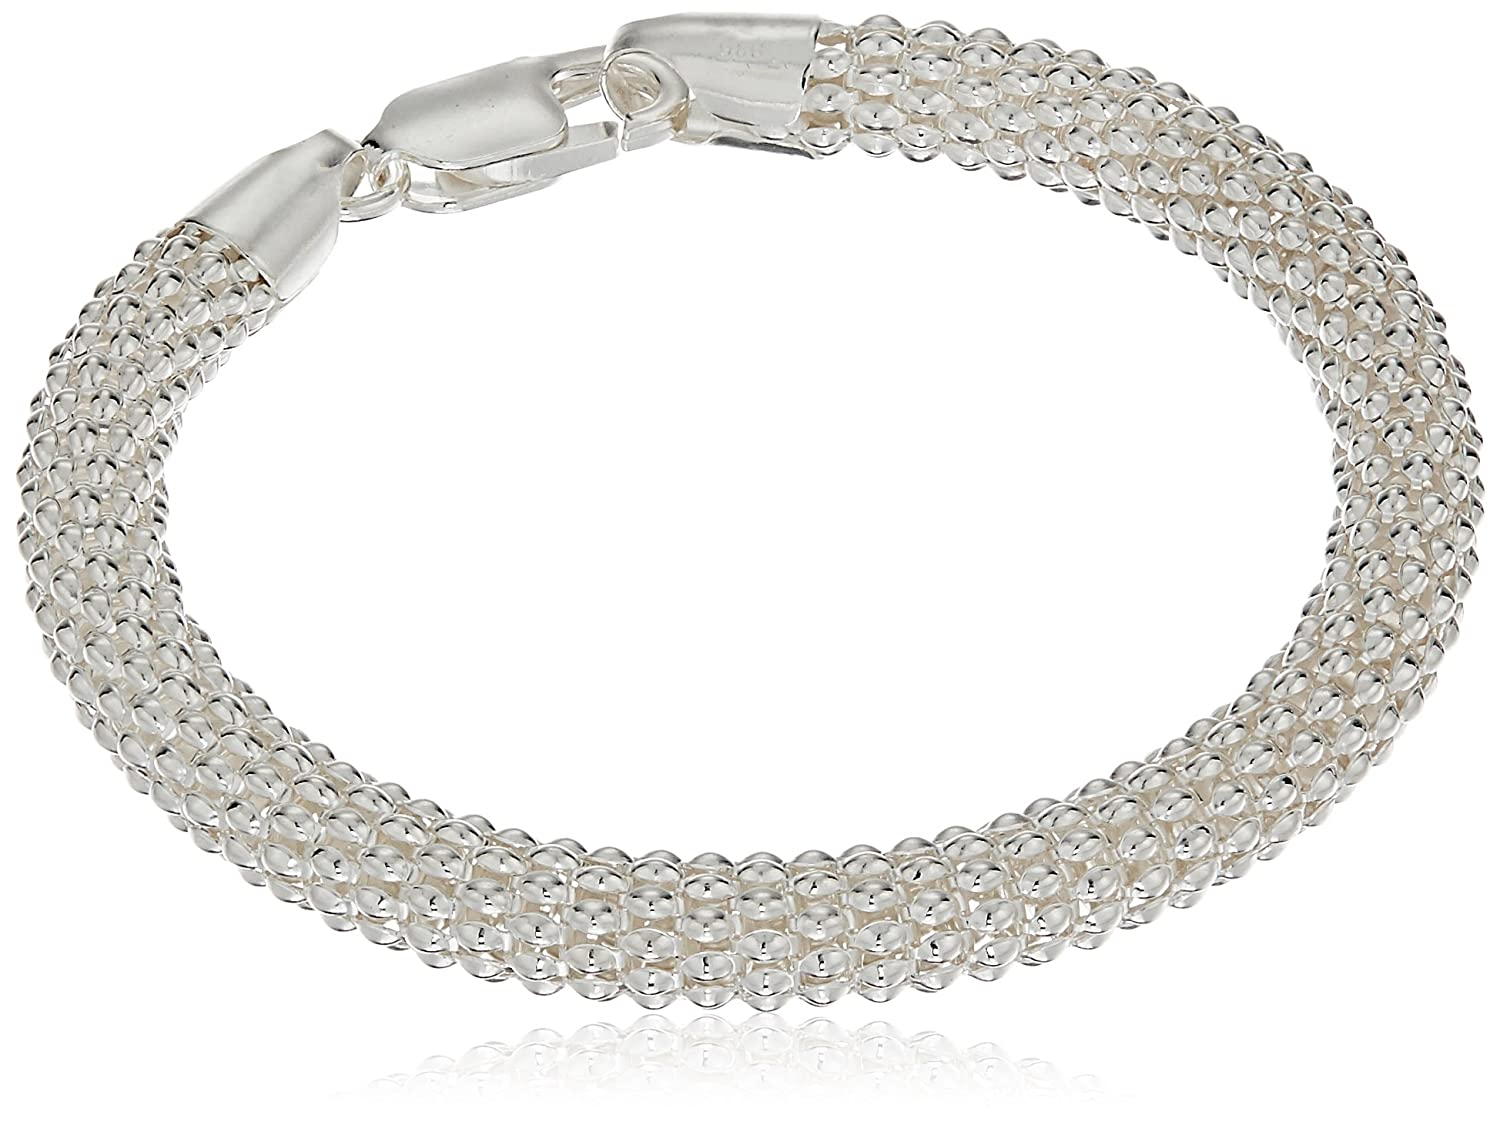 Sterling Silver Large Round Mesh Bead Bracelet, 7.5 7.5 Amazon Collection S12807-7.5A